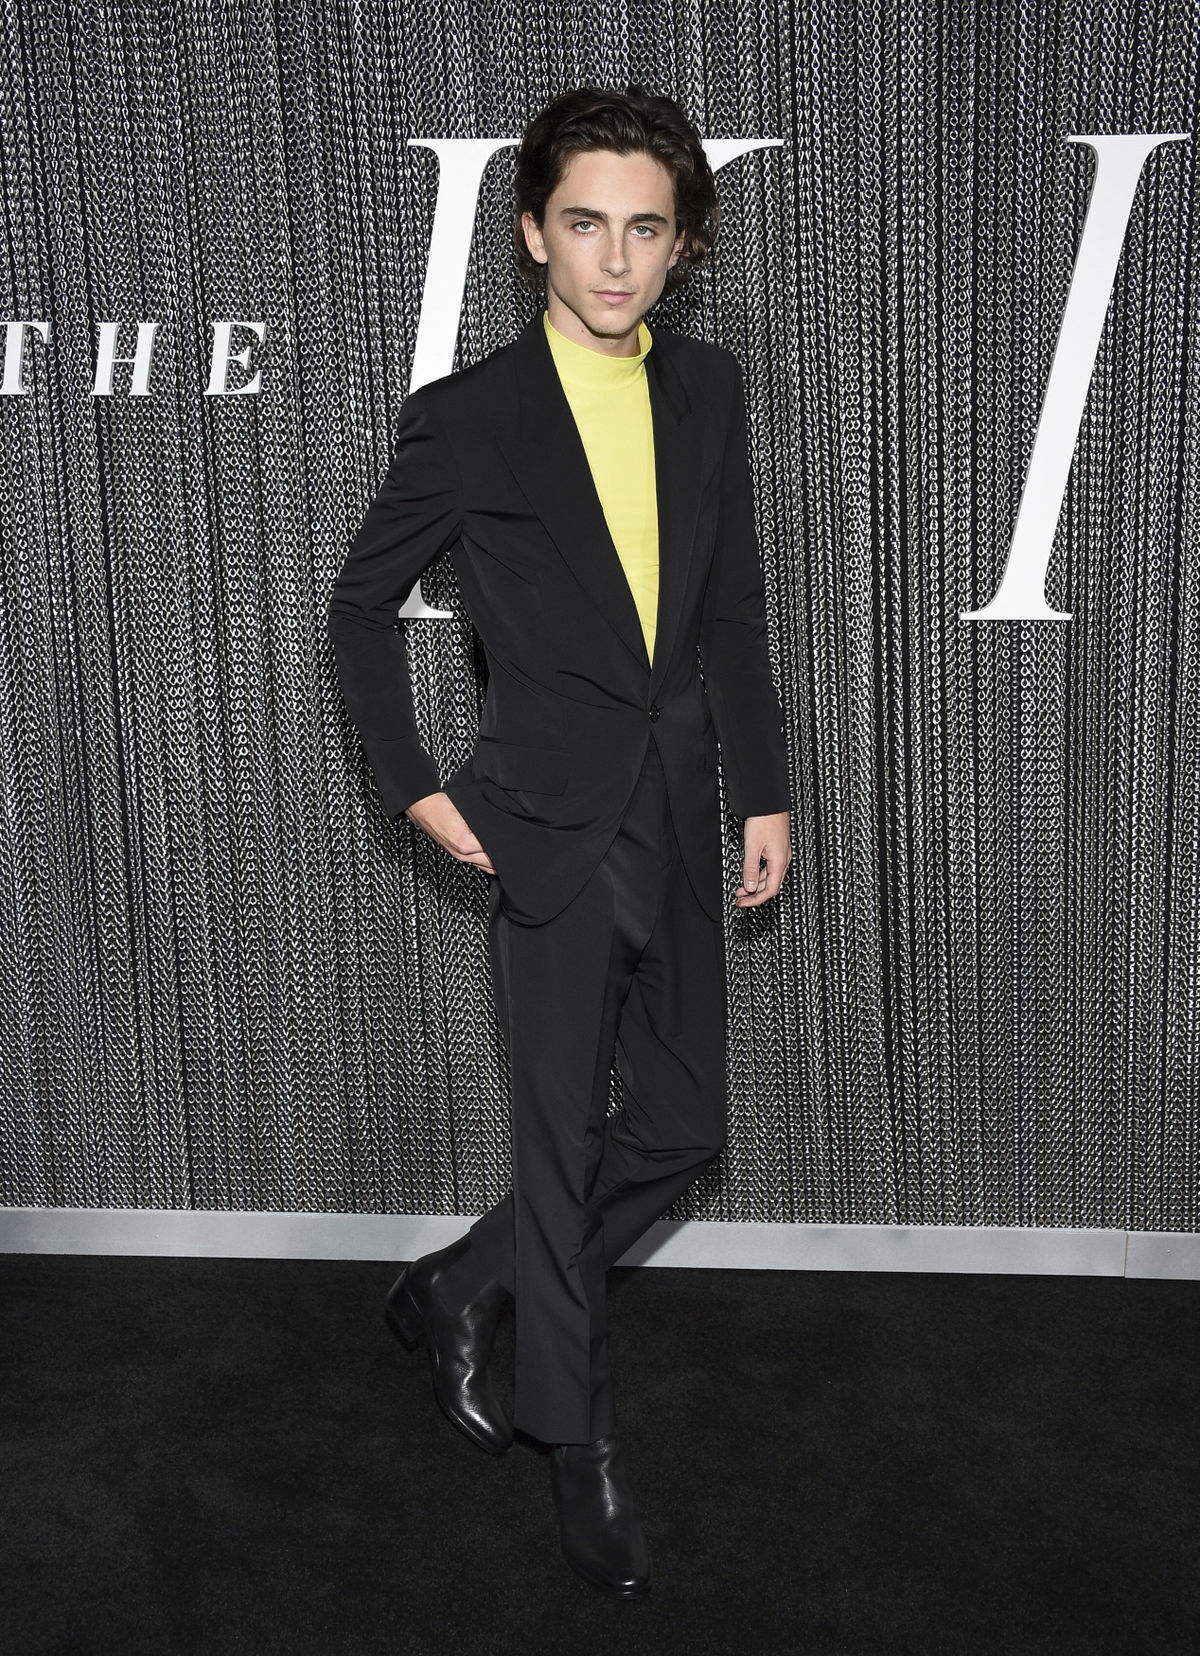 Herec Timothee Chalamet na premiére filmu The...